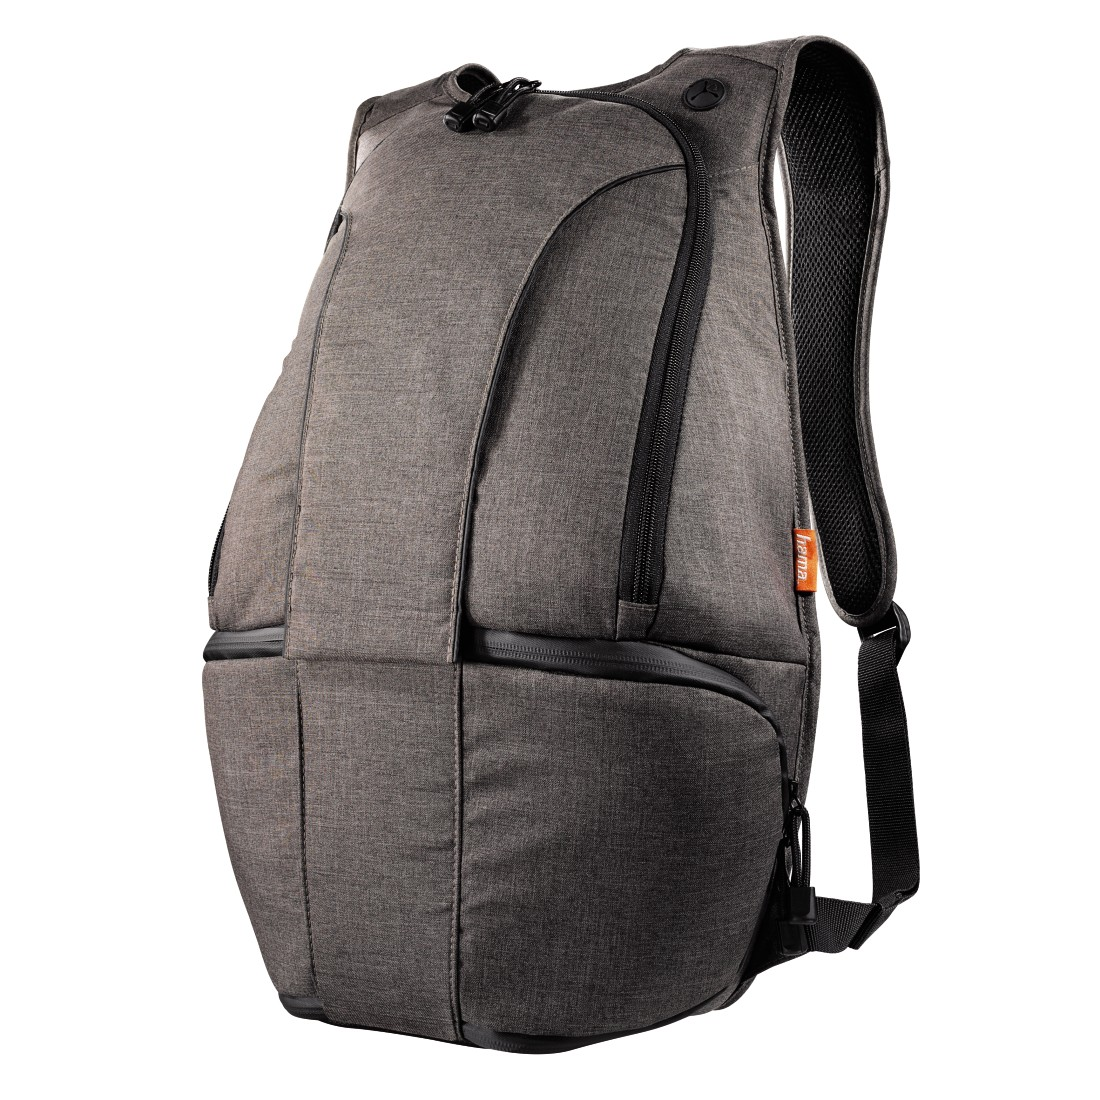 abx4 High-Res Image4 - Hama, Lismore Camera Backpack, 170, black